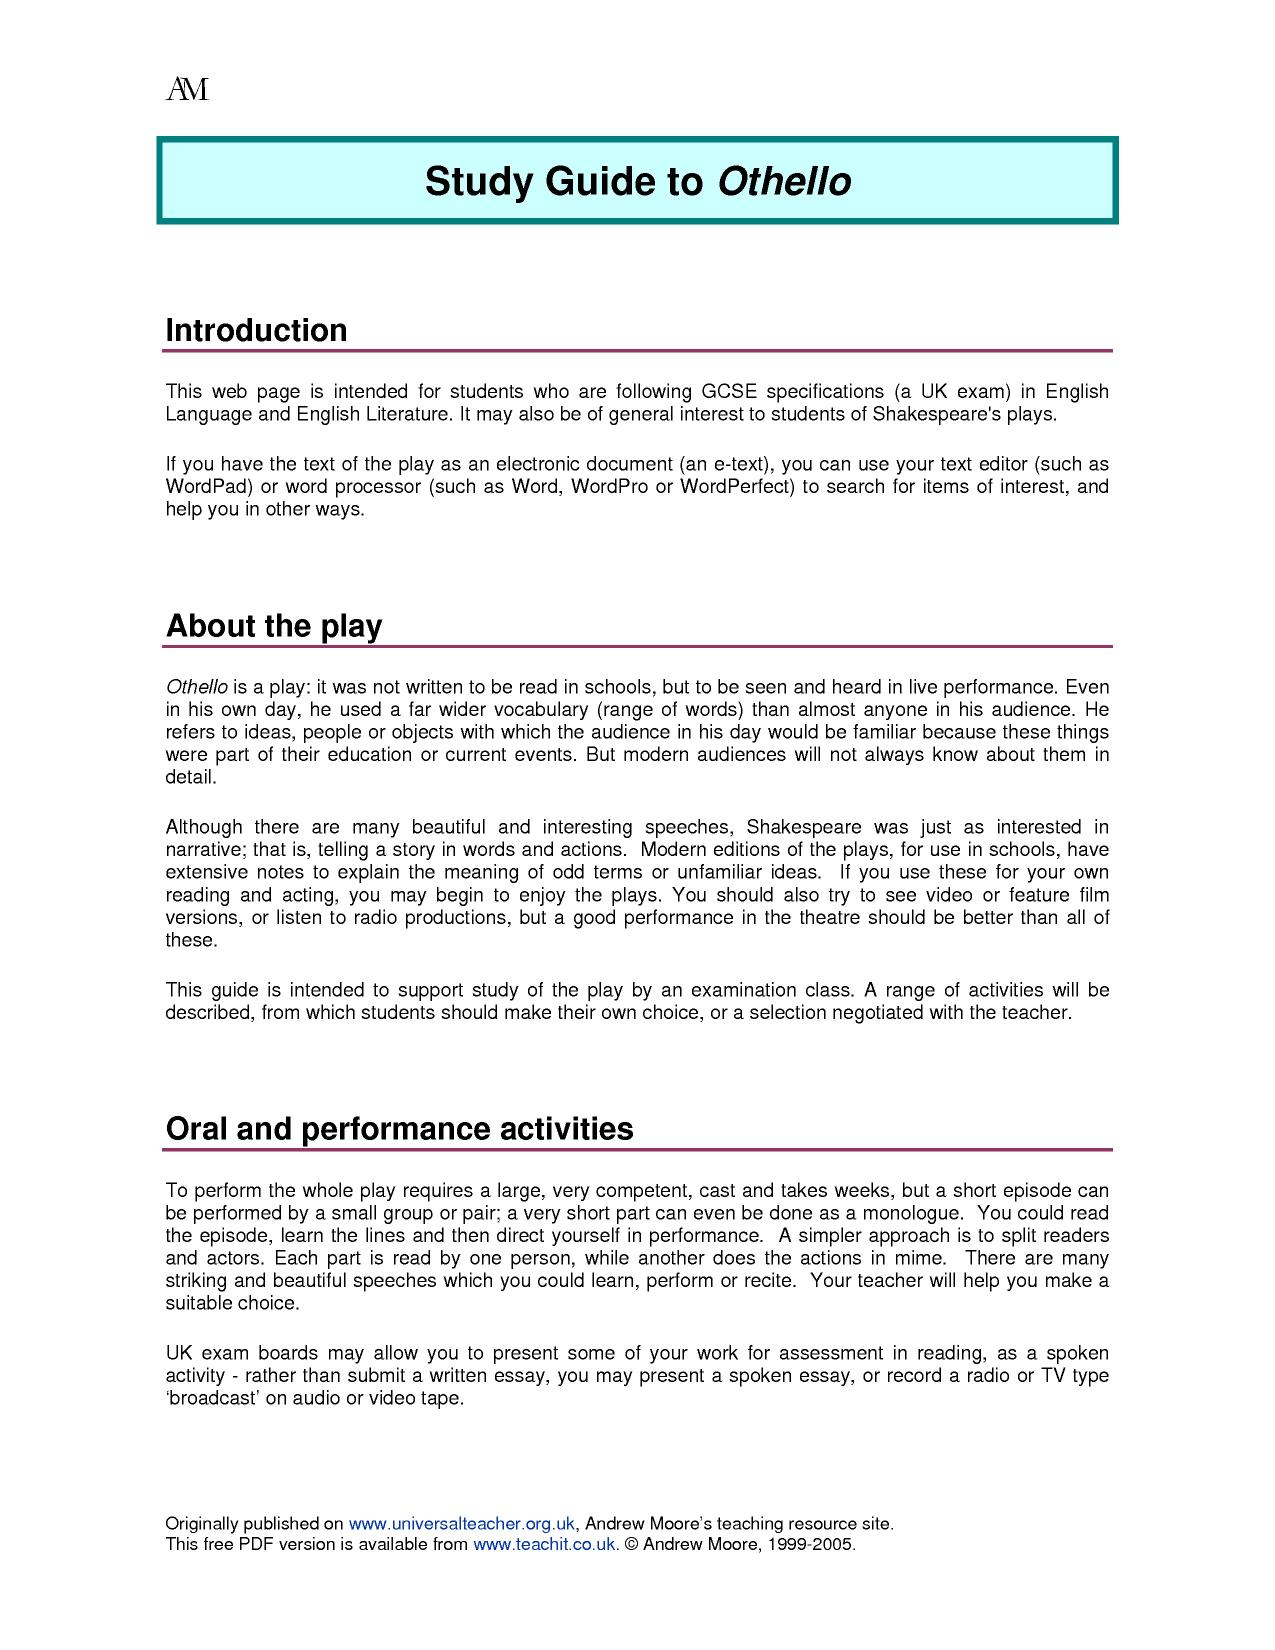 critical essay on othello othello jealousy essay search results  search results teachit 2 preview